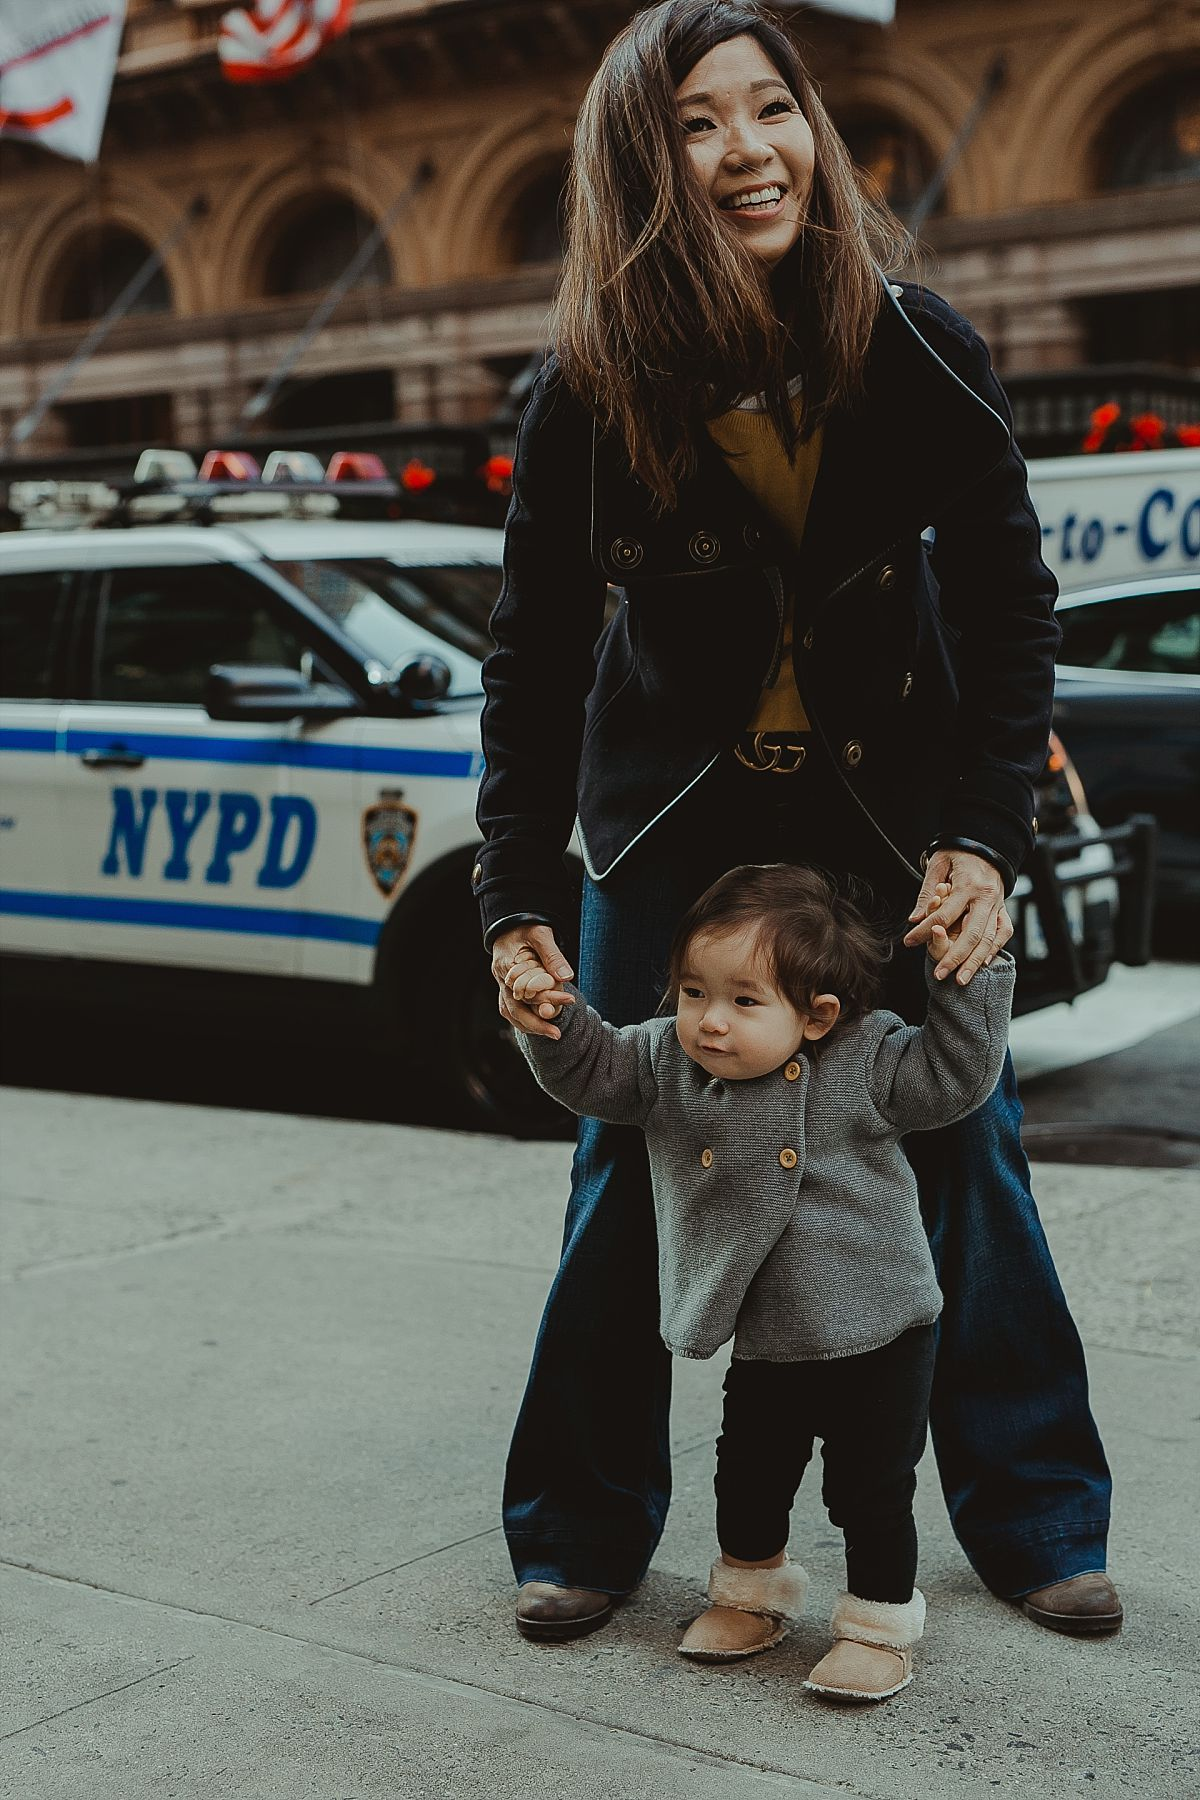 mom and daughter walking the streets of midtown with nypd car in the background. image taken by photographer krystil mcdowall